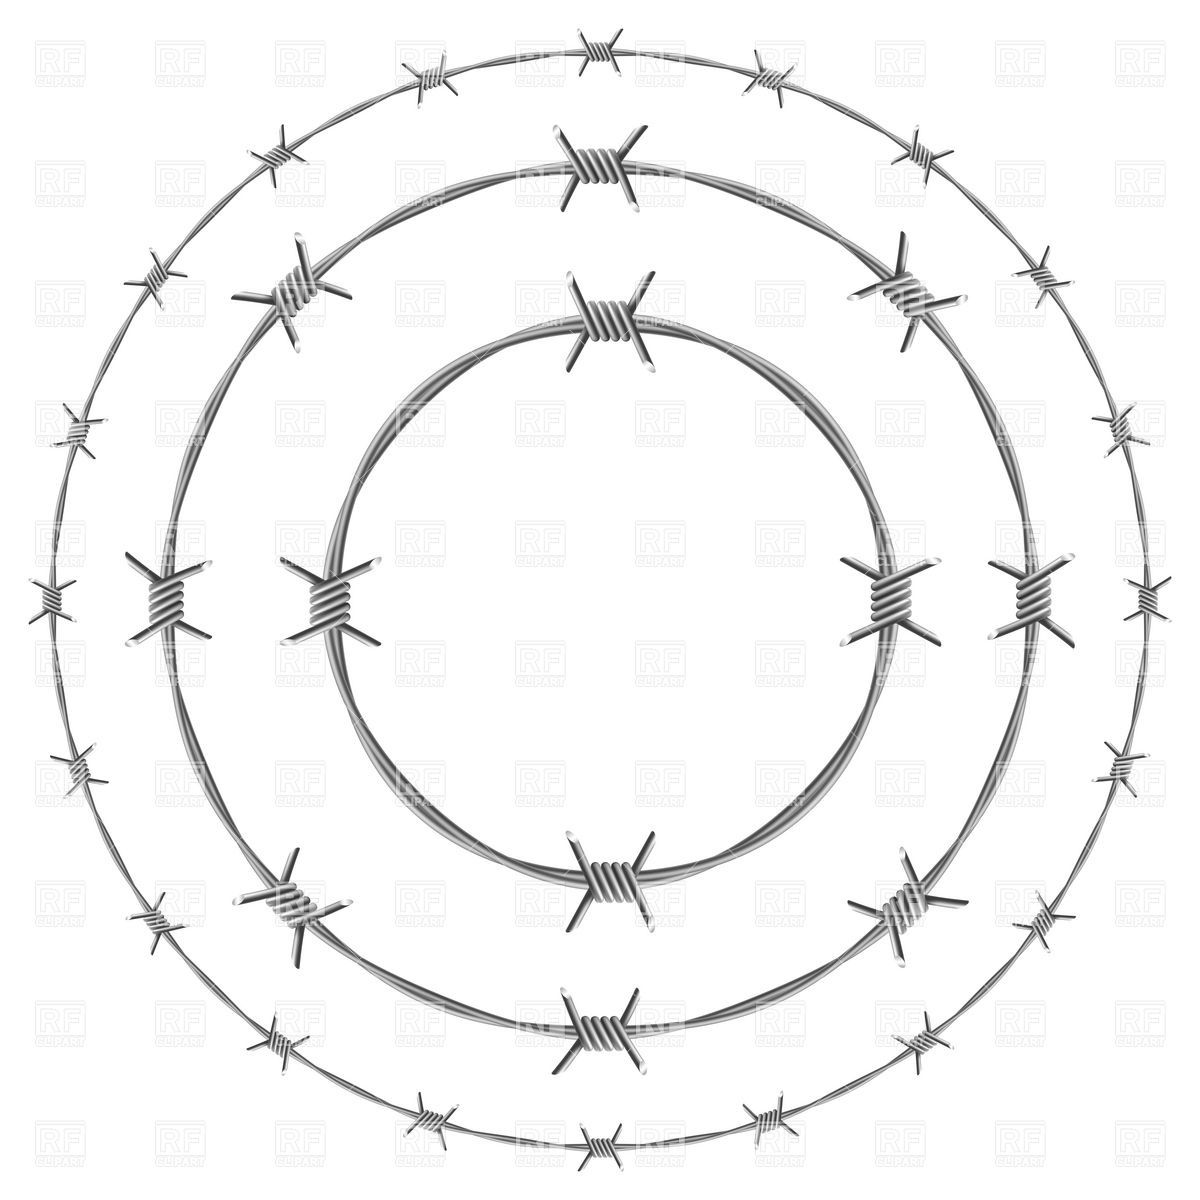 Barbed wire vector brush - Barbed Wire Border Barbed Wire Circle Frames Download Royalty Free Vector Clipart